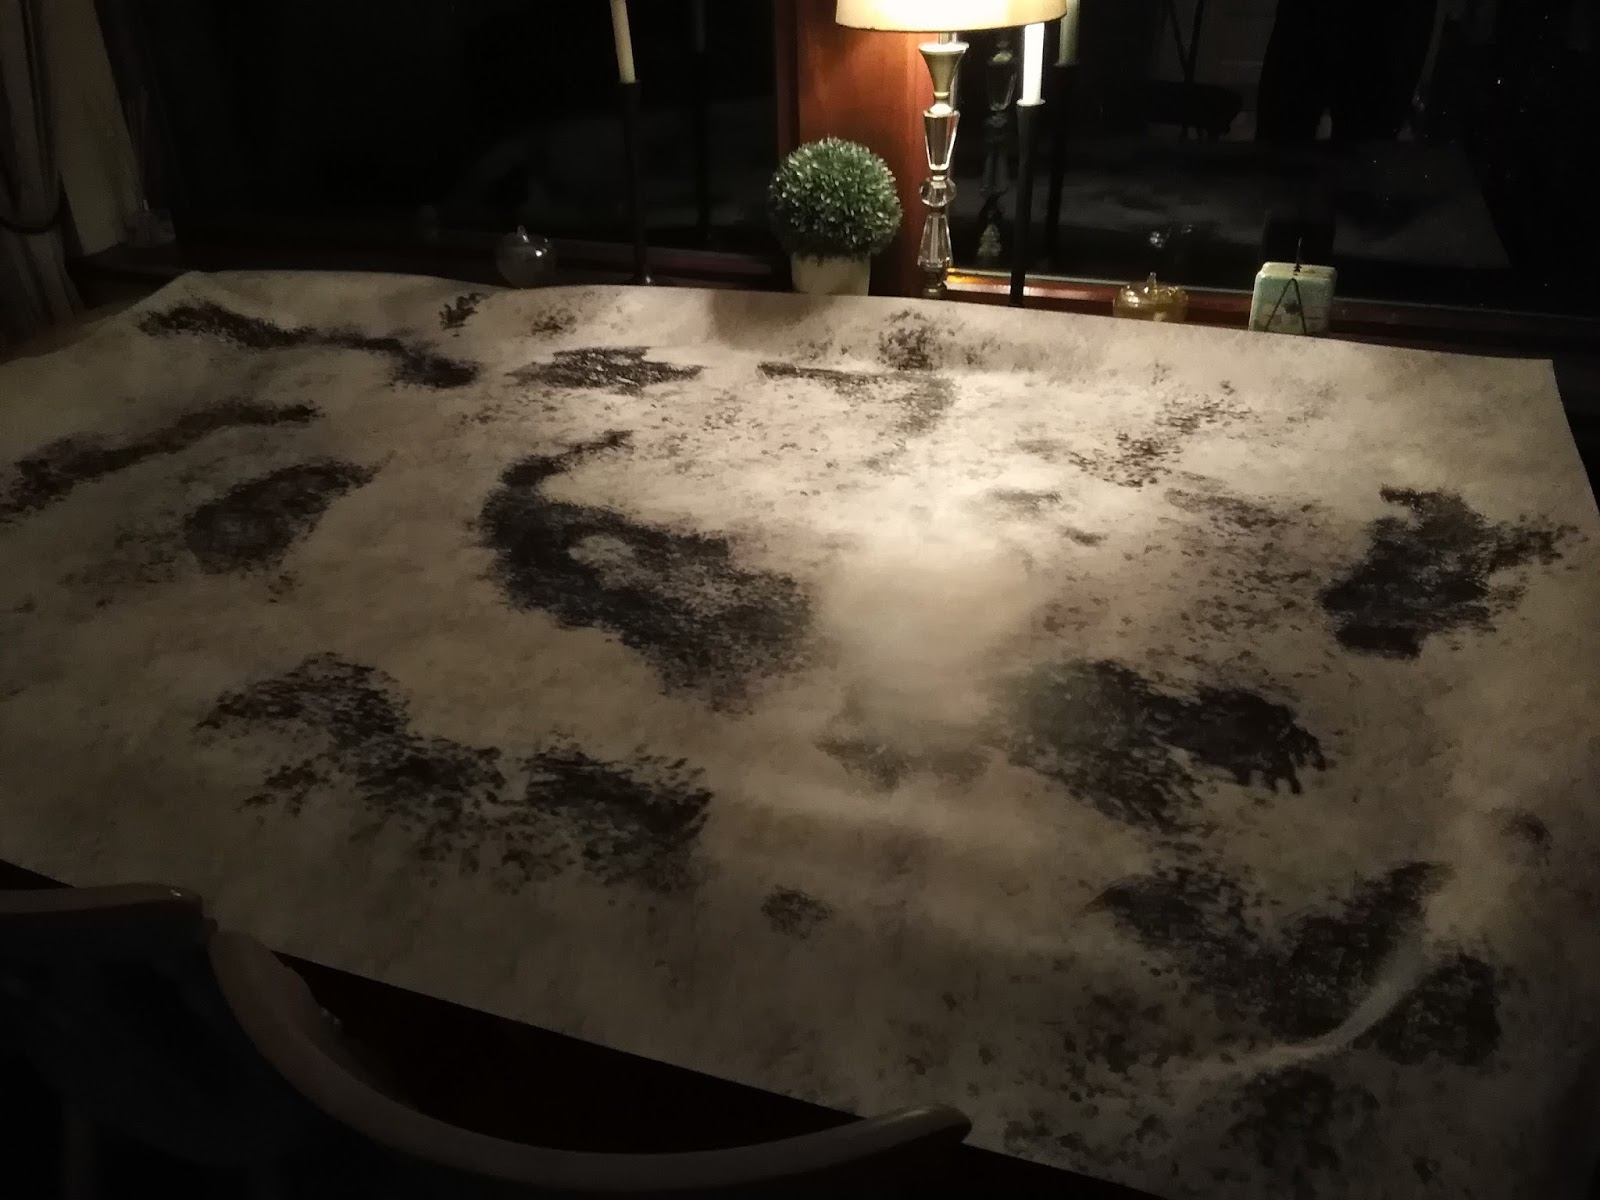 GA PA Great Northern War Gaming & Other Projects: Terrain Mats